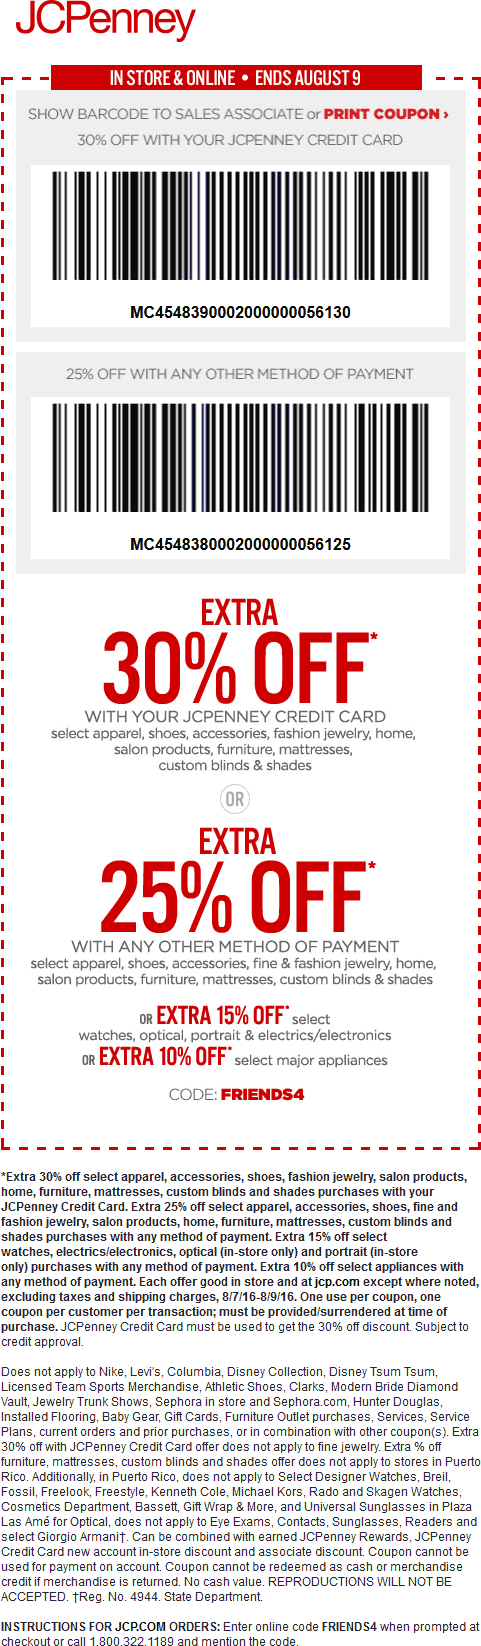 JCPenney Coupon June 2017 Extra 25% off at JCPenney, or online via promo code FRIENDS4